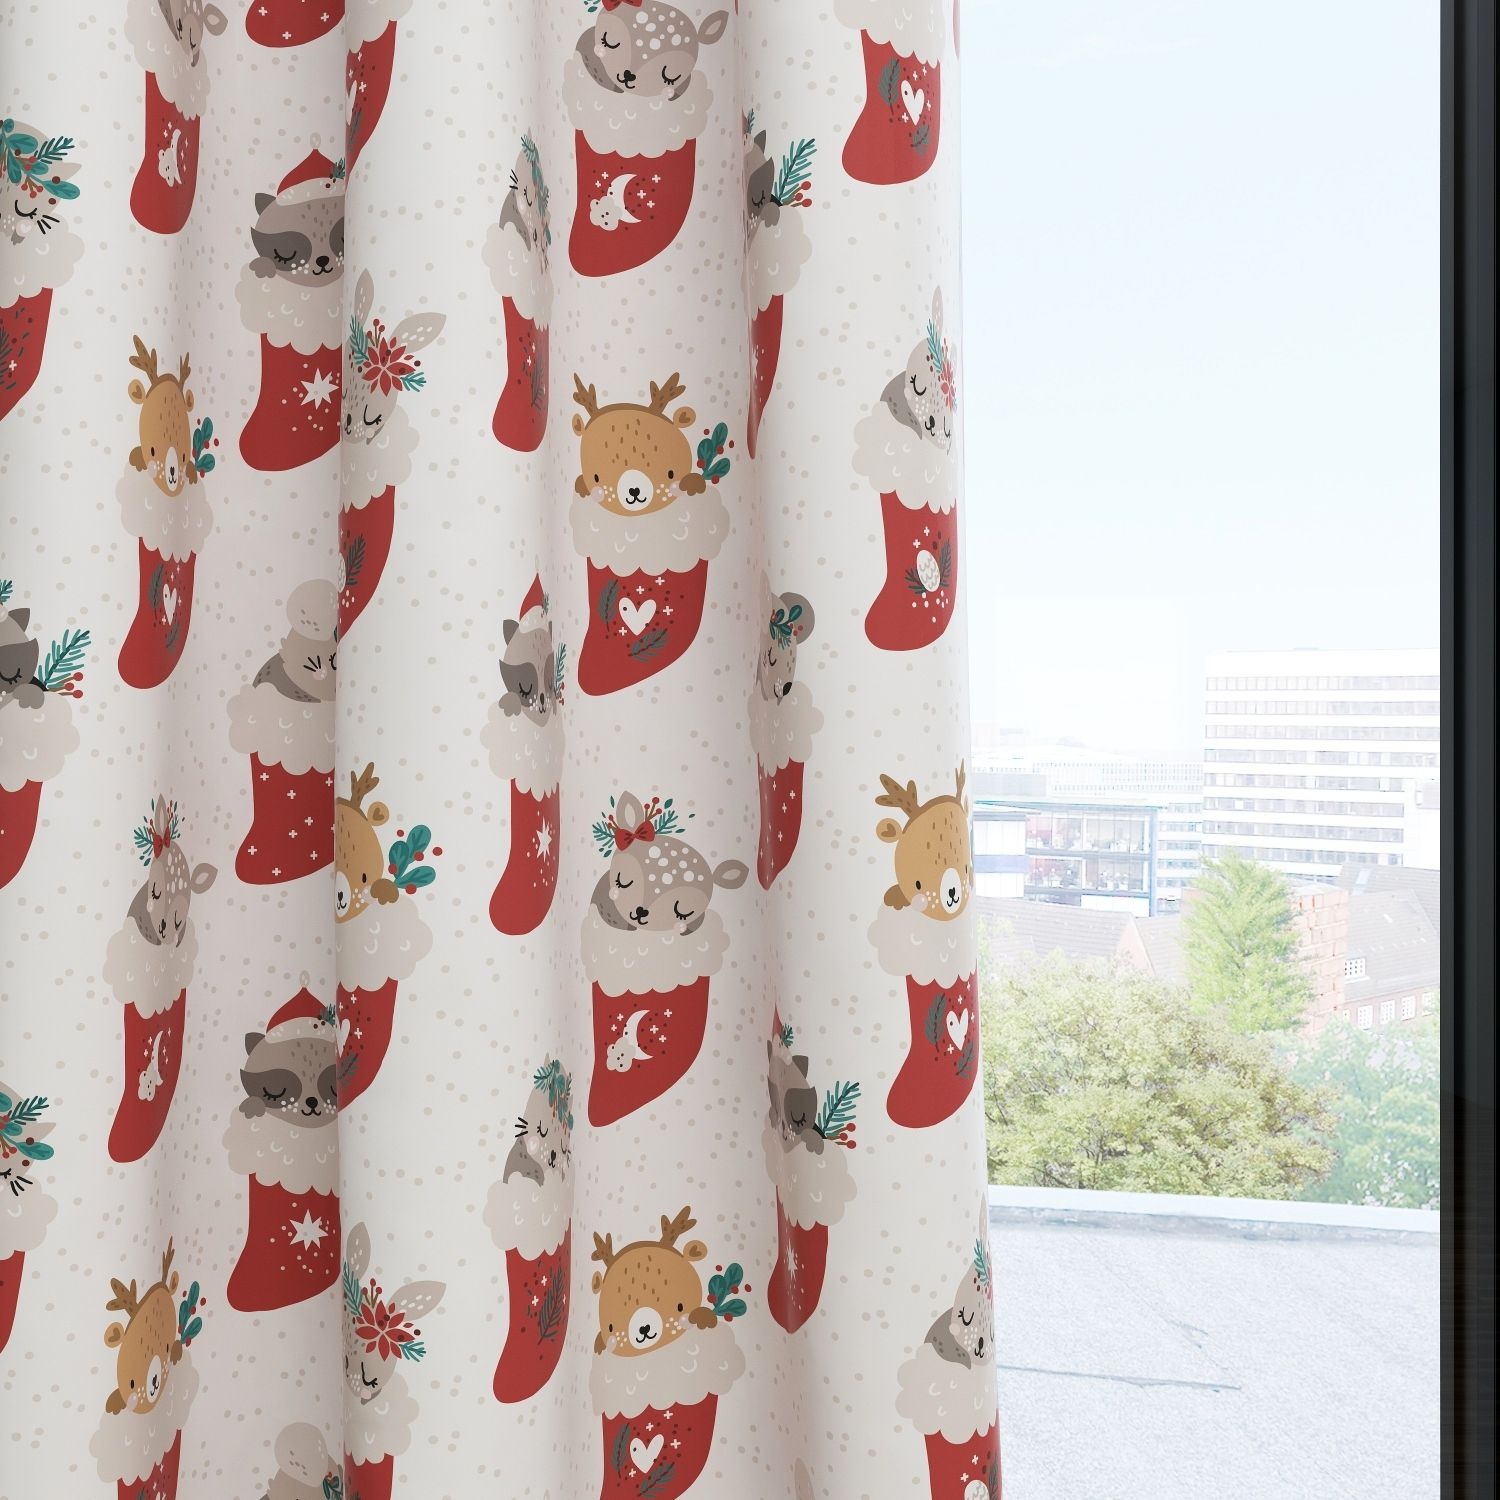 Kids & Nursery Blackout Curtains - Deer Santa